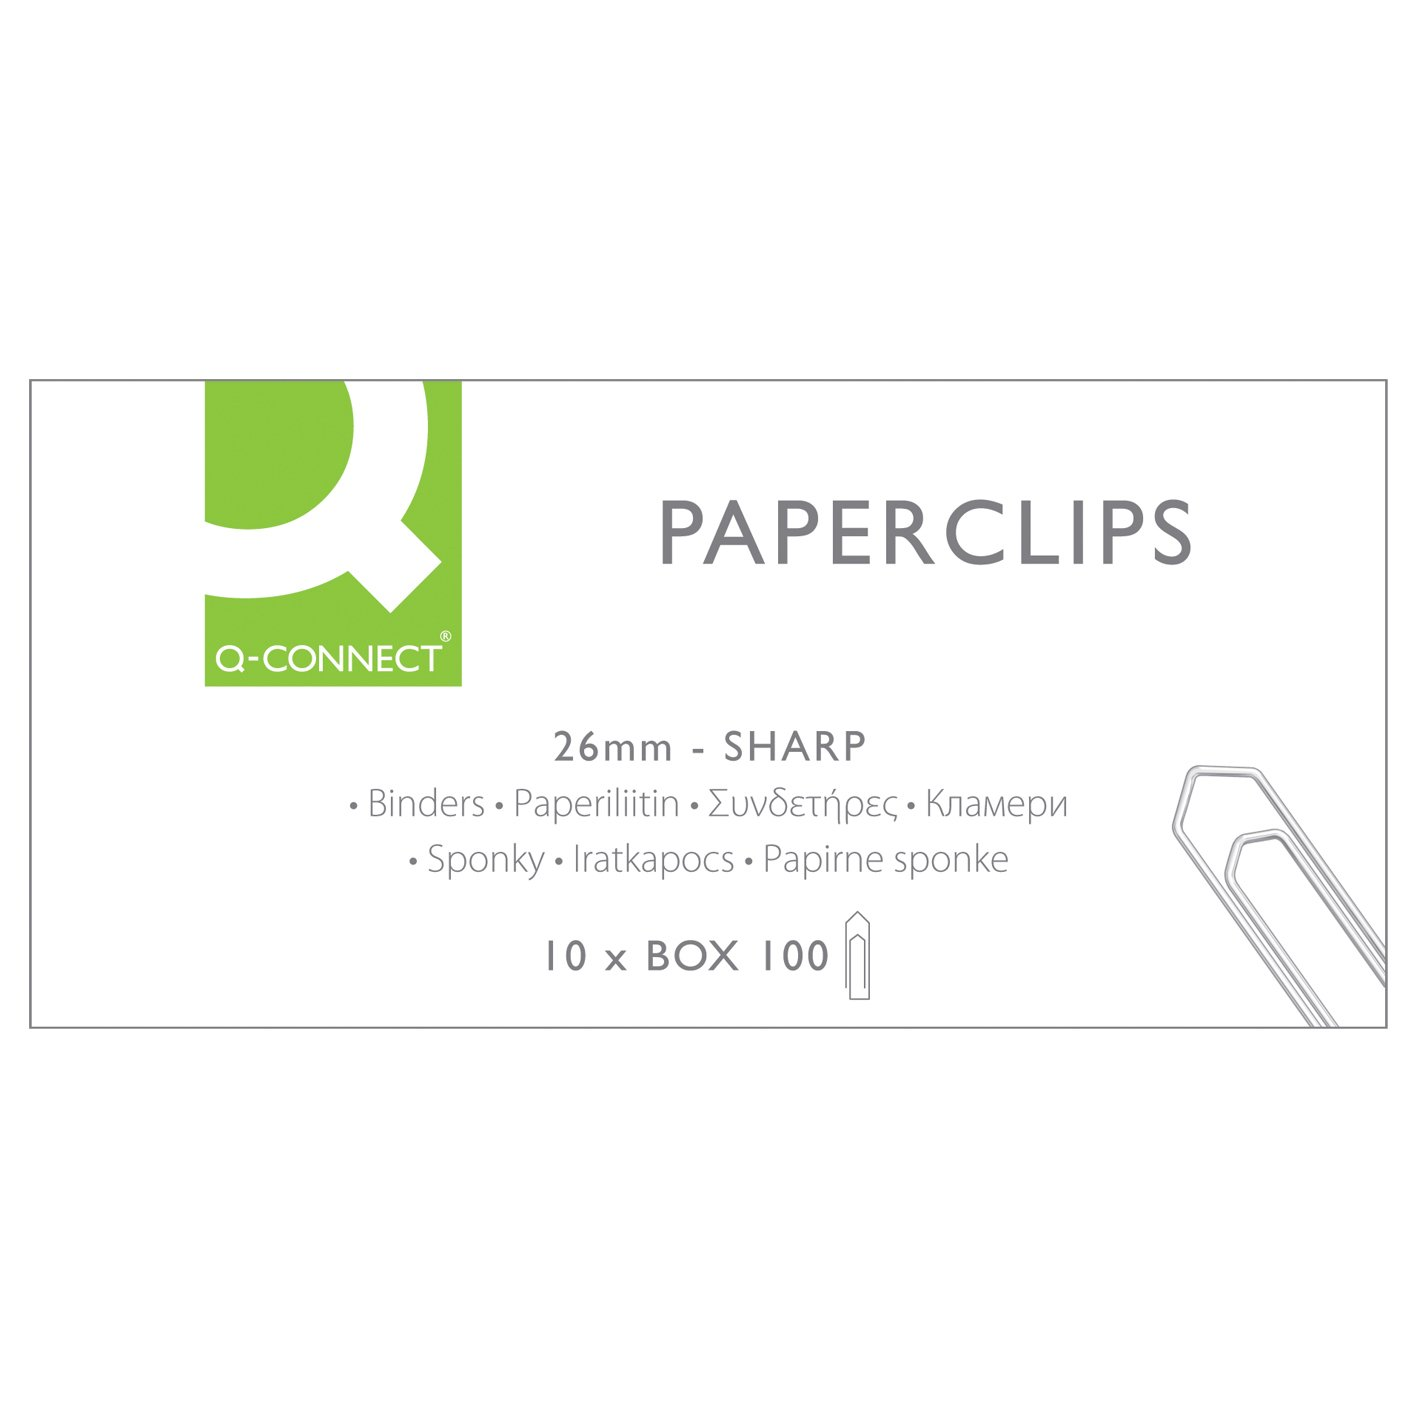 Q-connect clips